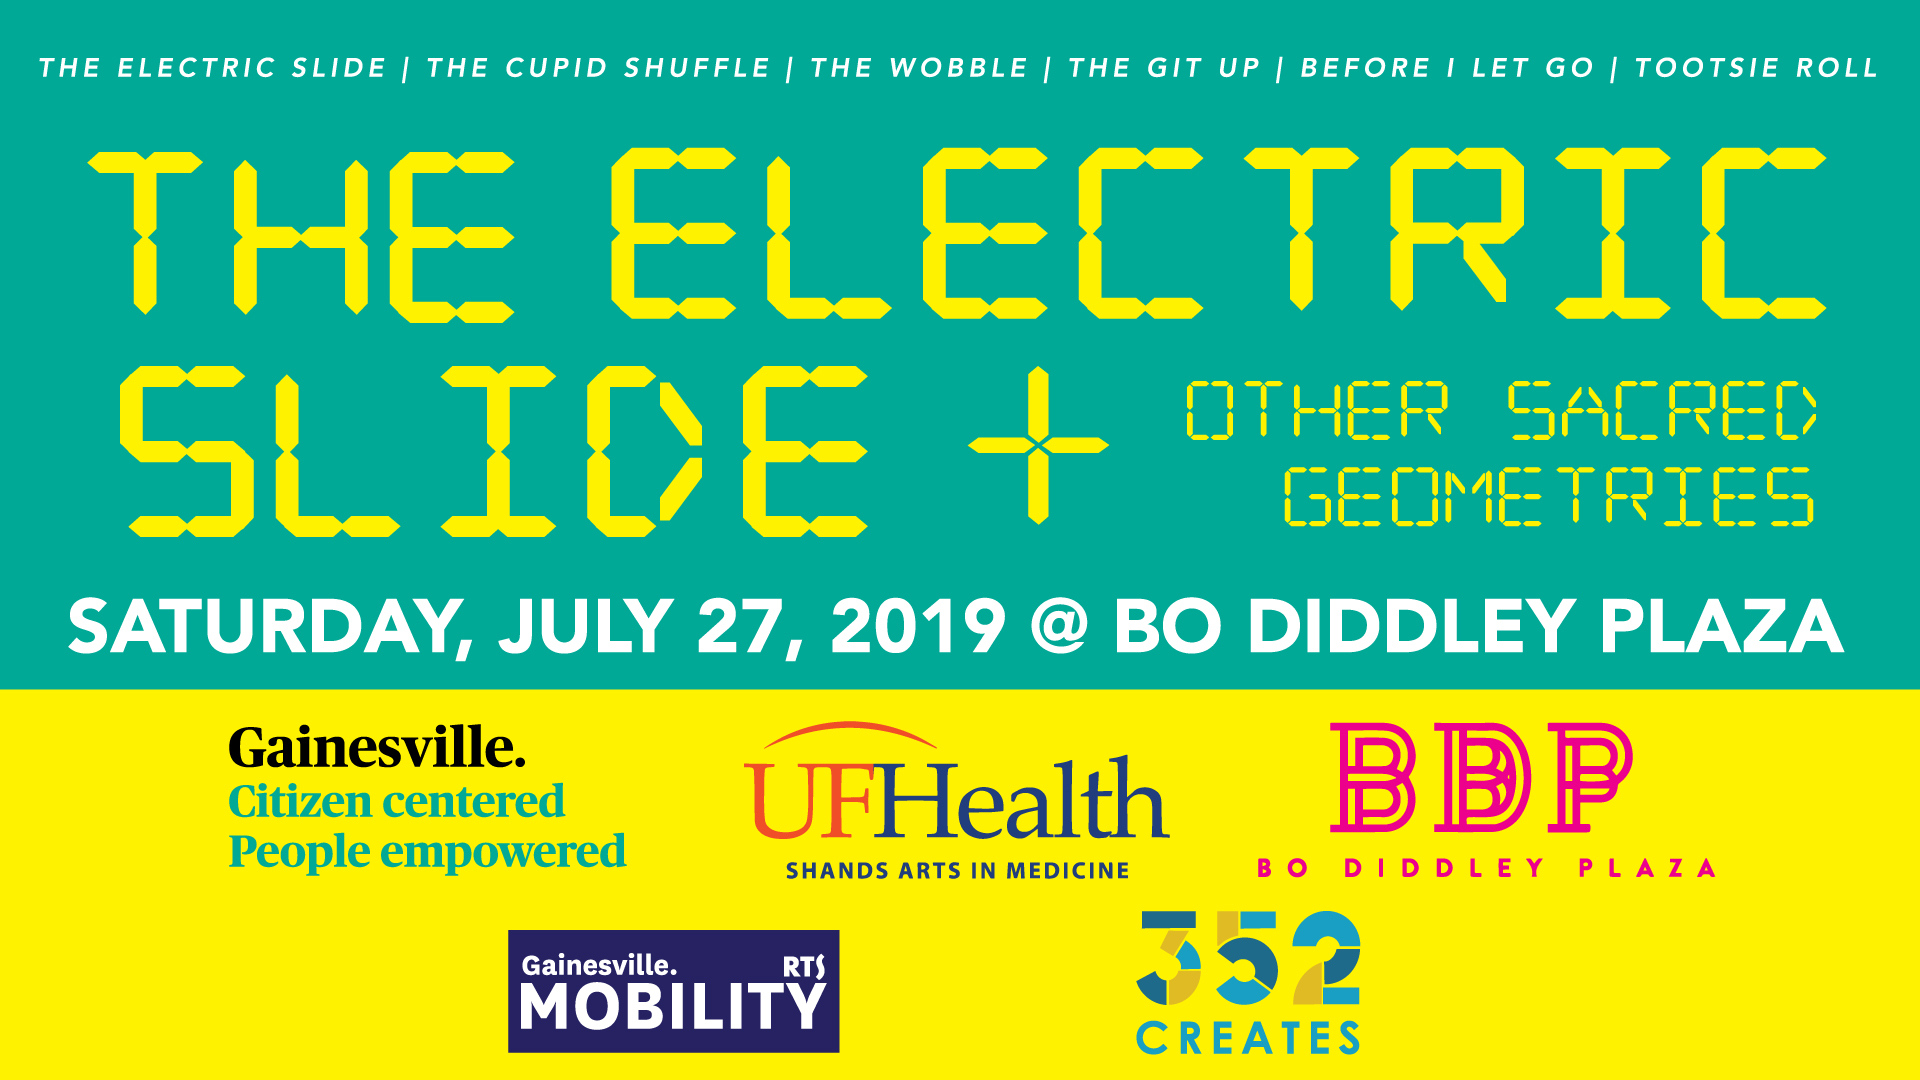 "The UF Center for Arts in Medicine and The City of Gainesville invites you to THE ELECTRIC SLIDE+ OTHER SACRED GEOMETRIES, a National Dance Day celebration on Saturday, July 27th at Bo Diddley Plaza.  This day-long event is part of an ongoing project inspired by the diverse threads of American social dance. The Electric Slide, the Cupid Shuffle, the Wobble, the Tootsie Roll, the Hustle, the Git Up and other classic line dances are a call to action, empowering Gainesville residents through movement and highlighting the importance of preventative care.  Come groove with us -- ""it's ELECTRIC!""  For More Information Contact:  Kenya Robinson : kenya.robinson@gmail.com  Trent Williams: twilliams@arts.ufl.edu"